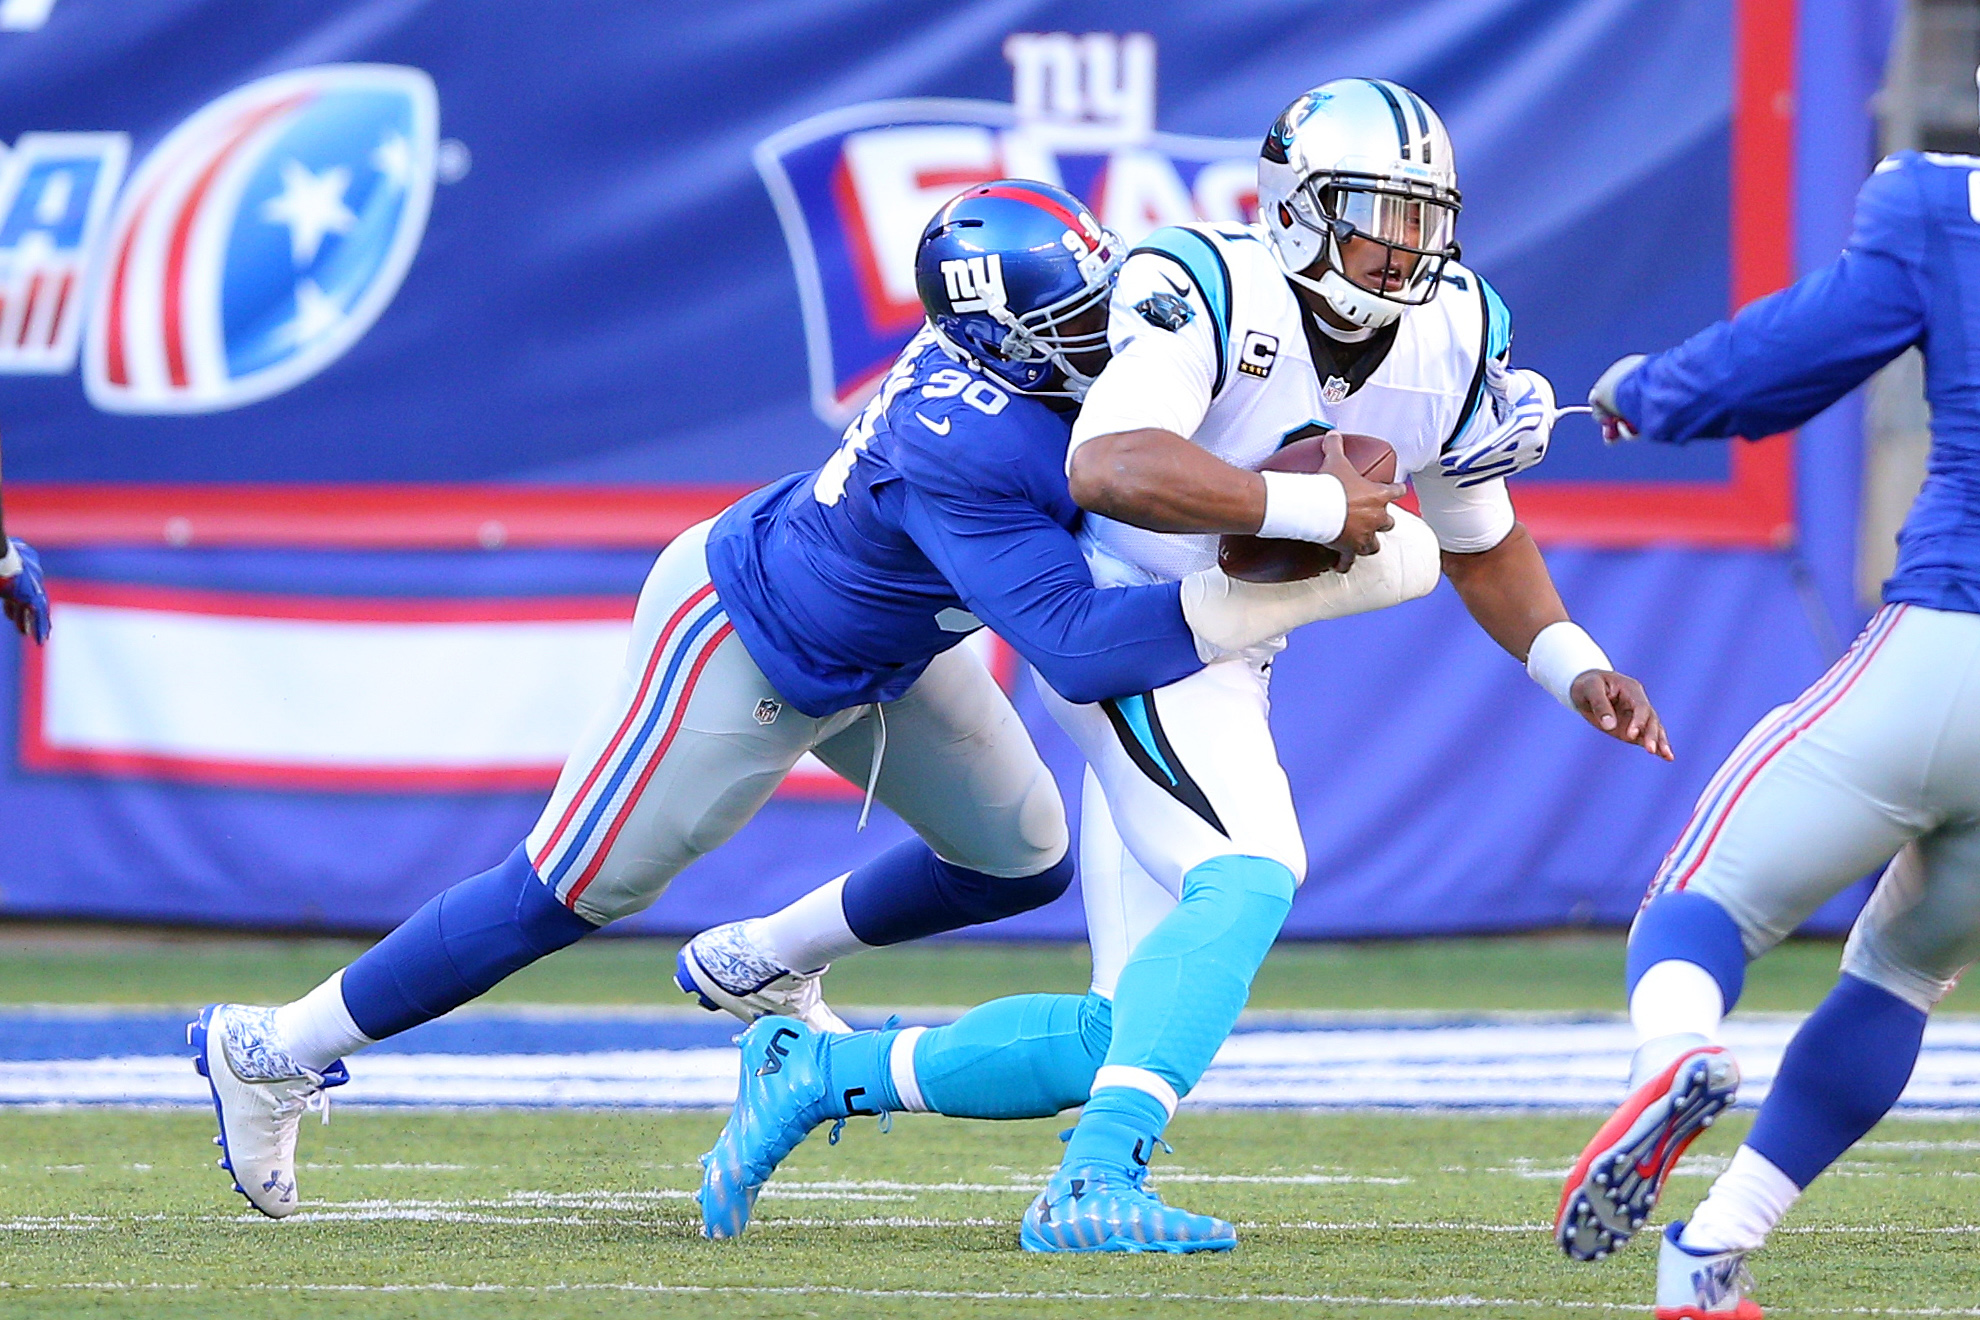 9007237-nfl-carolina-panthers-at-new-york-giants